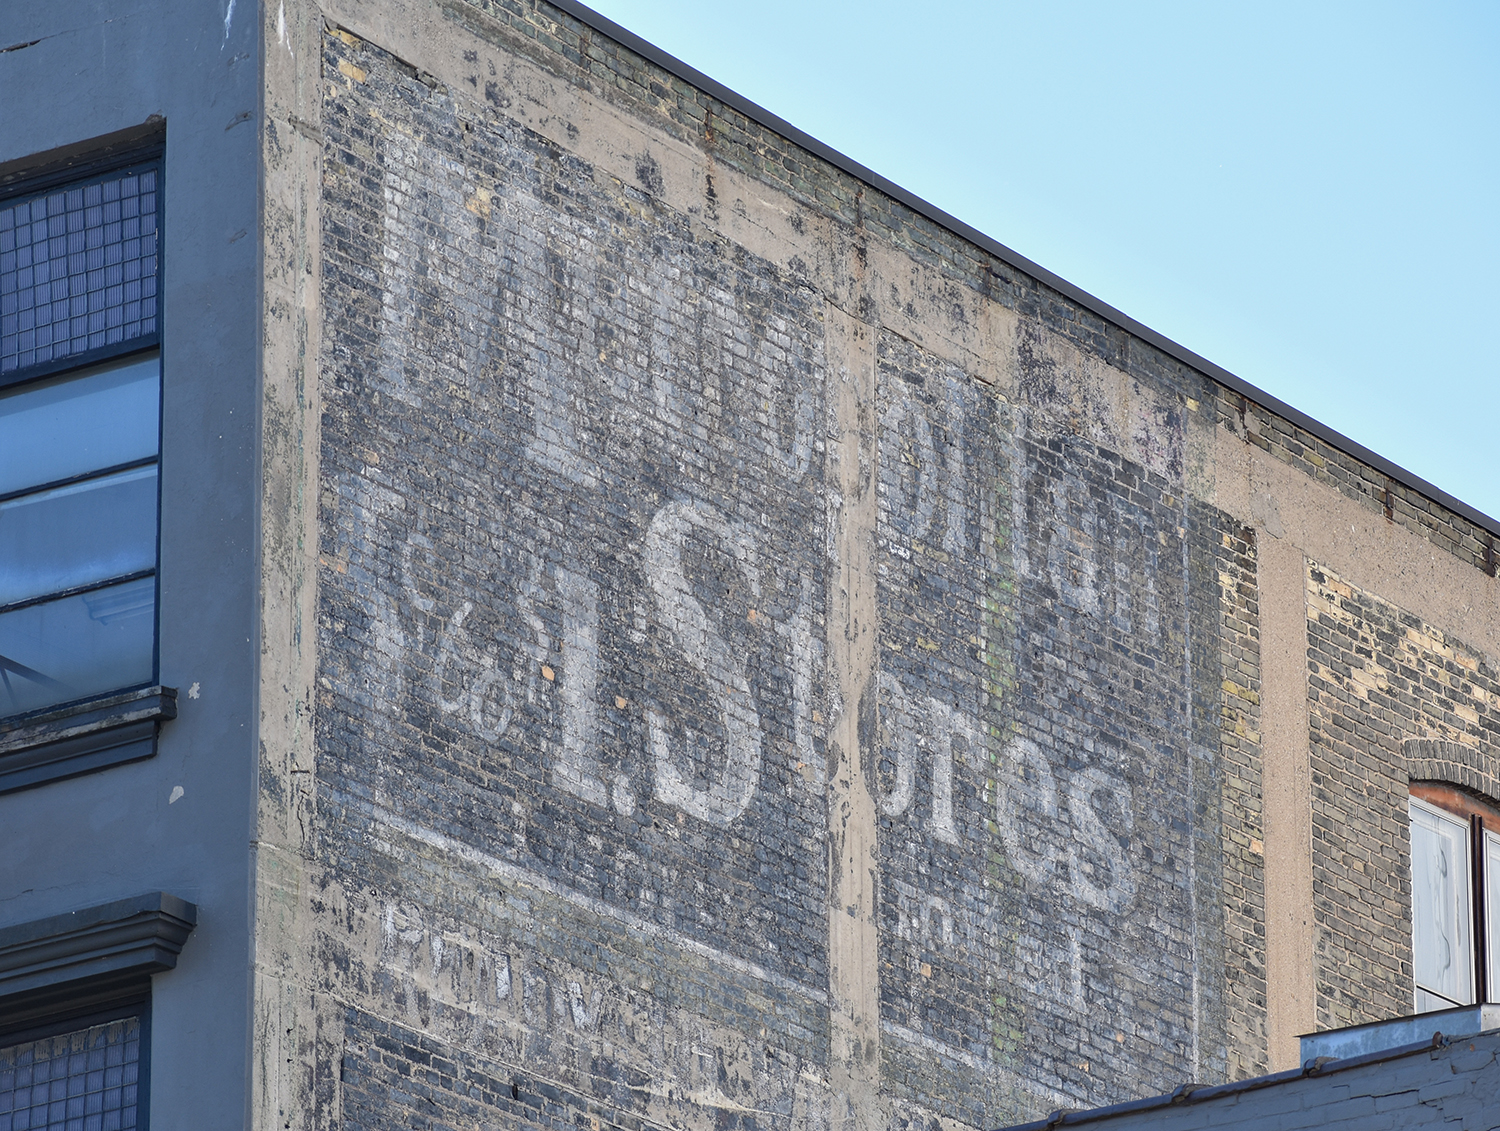 A faded sign says Metropolitan Stores